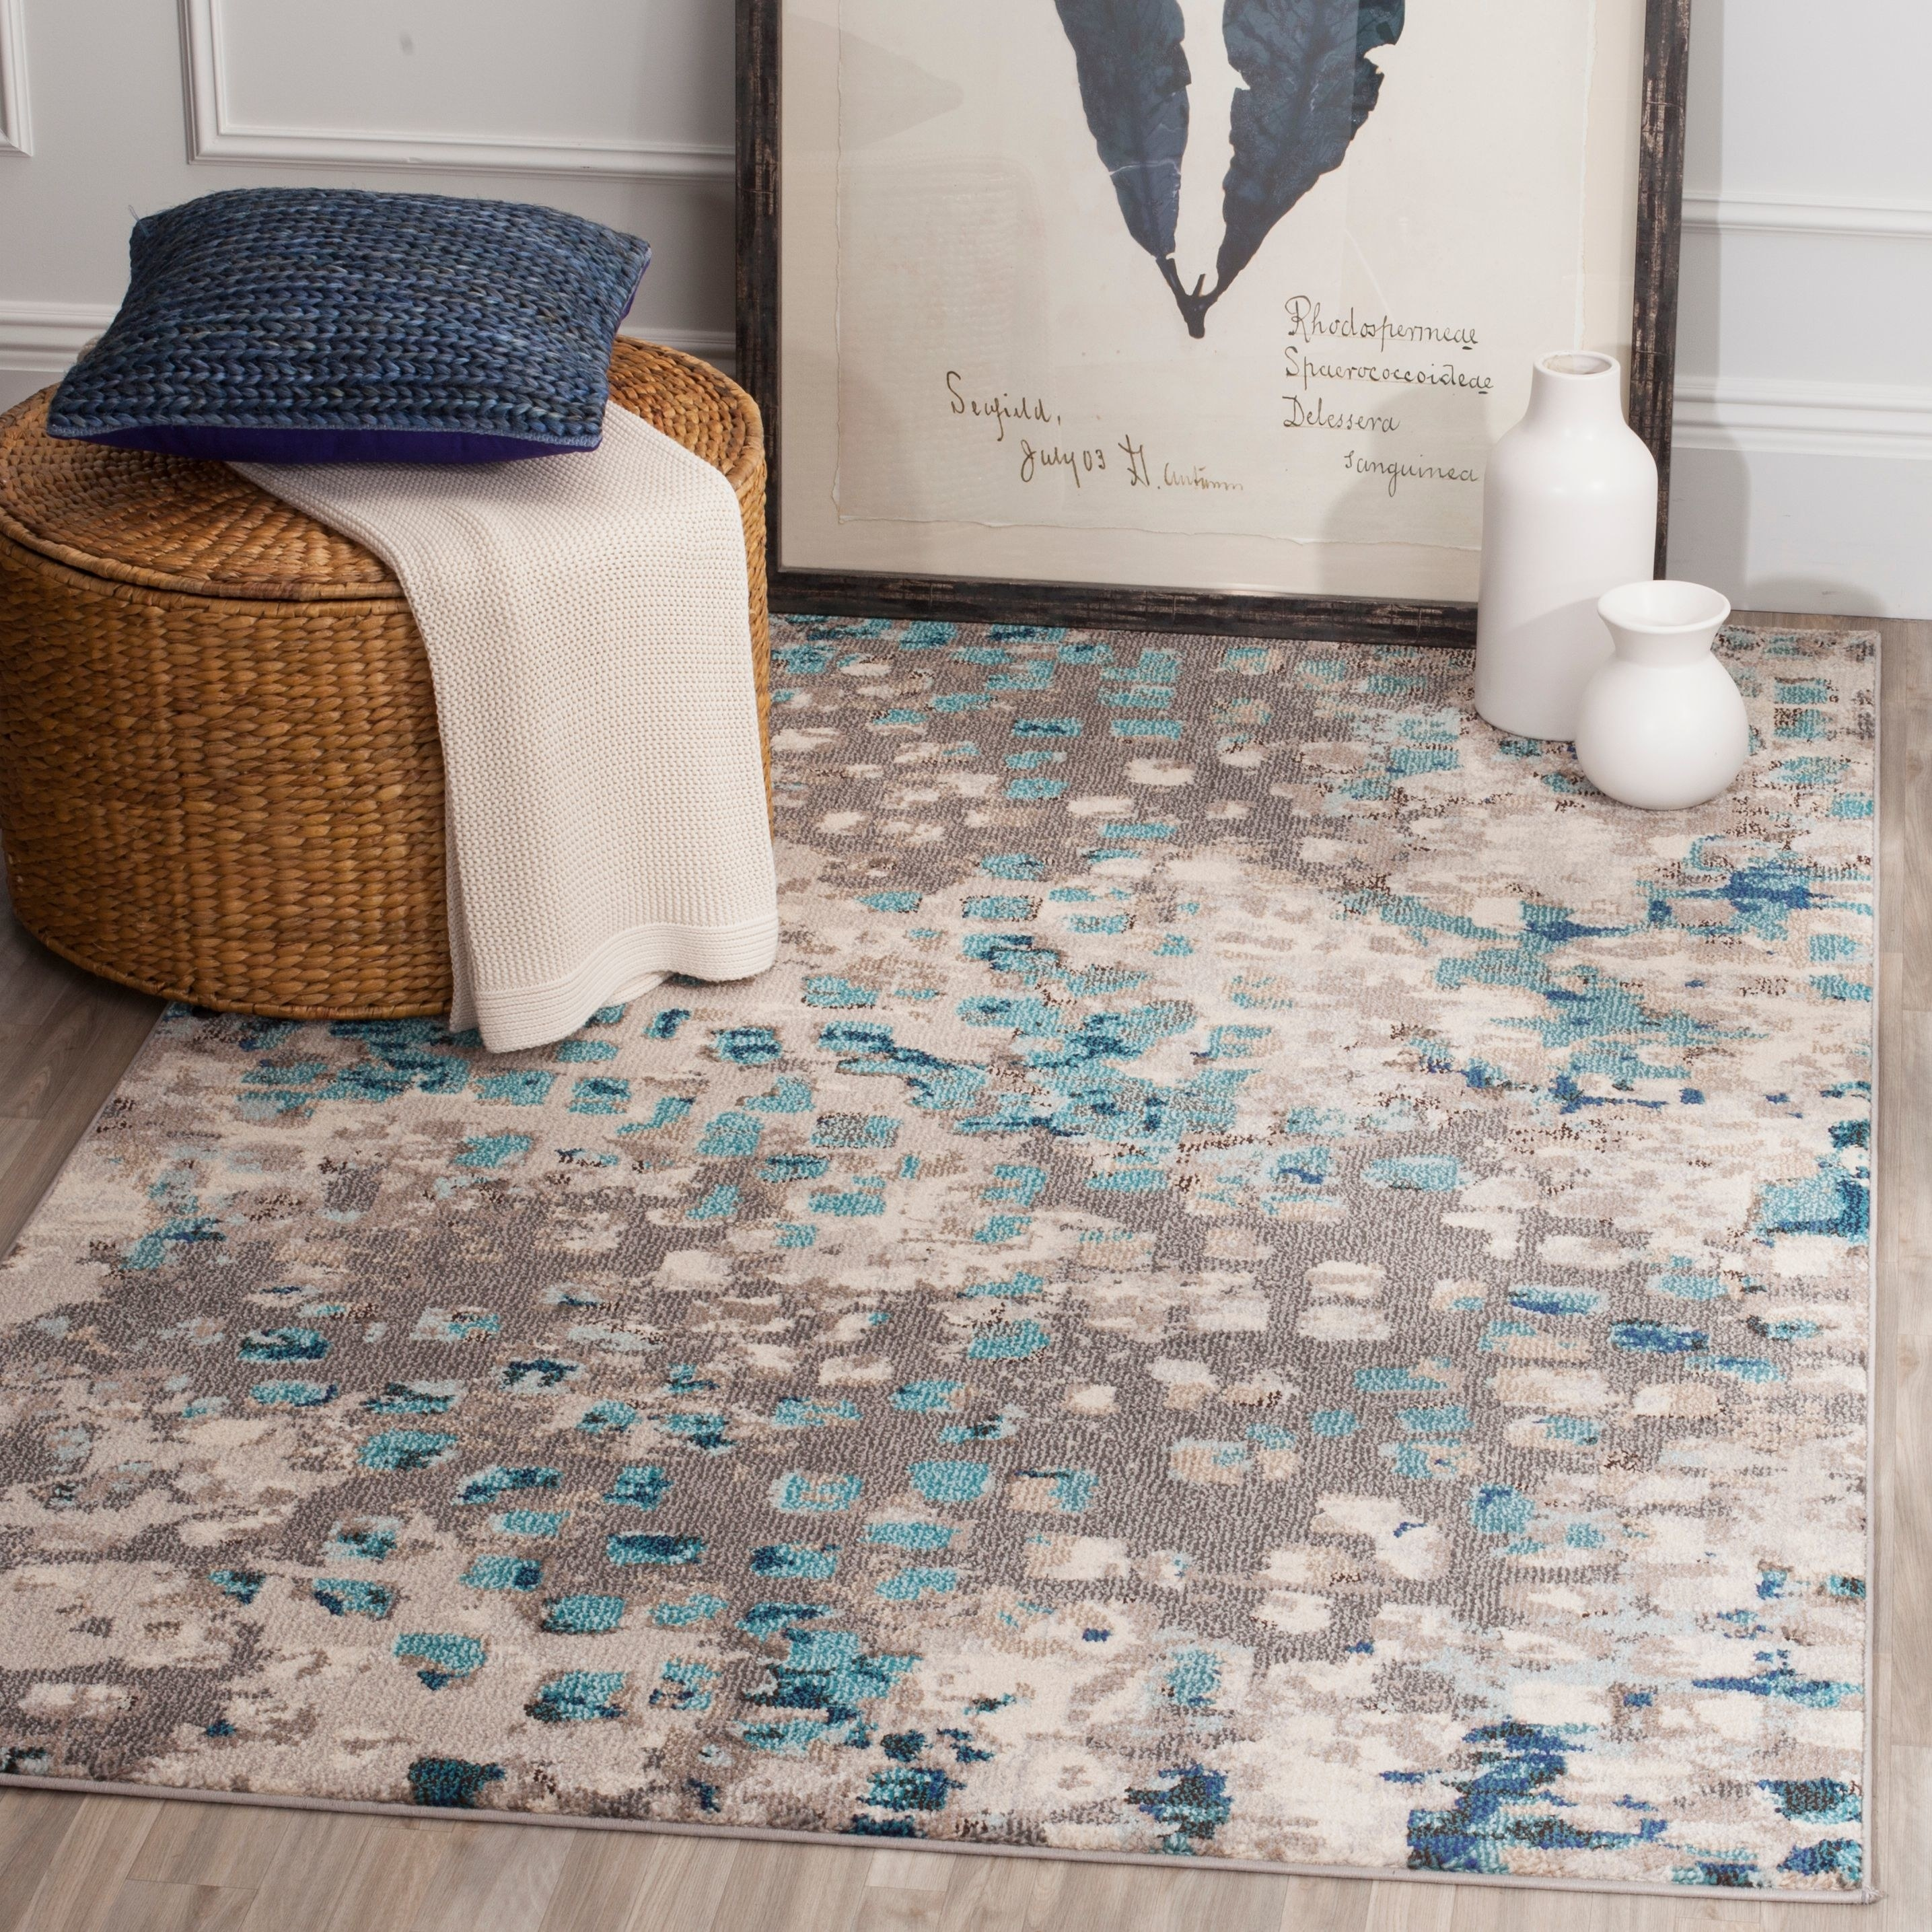 The rug in the color Grey/Light Blue